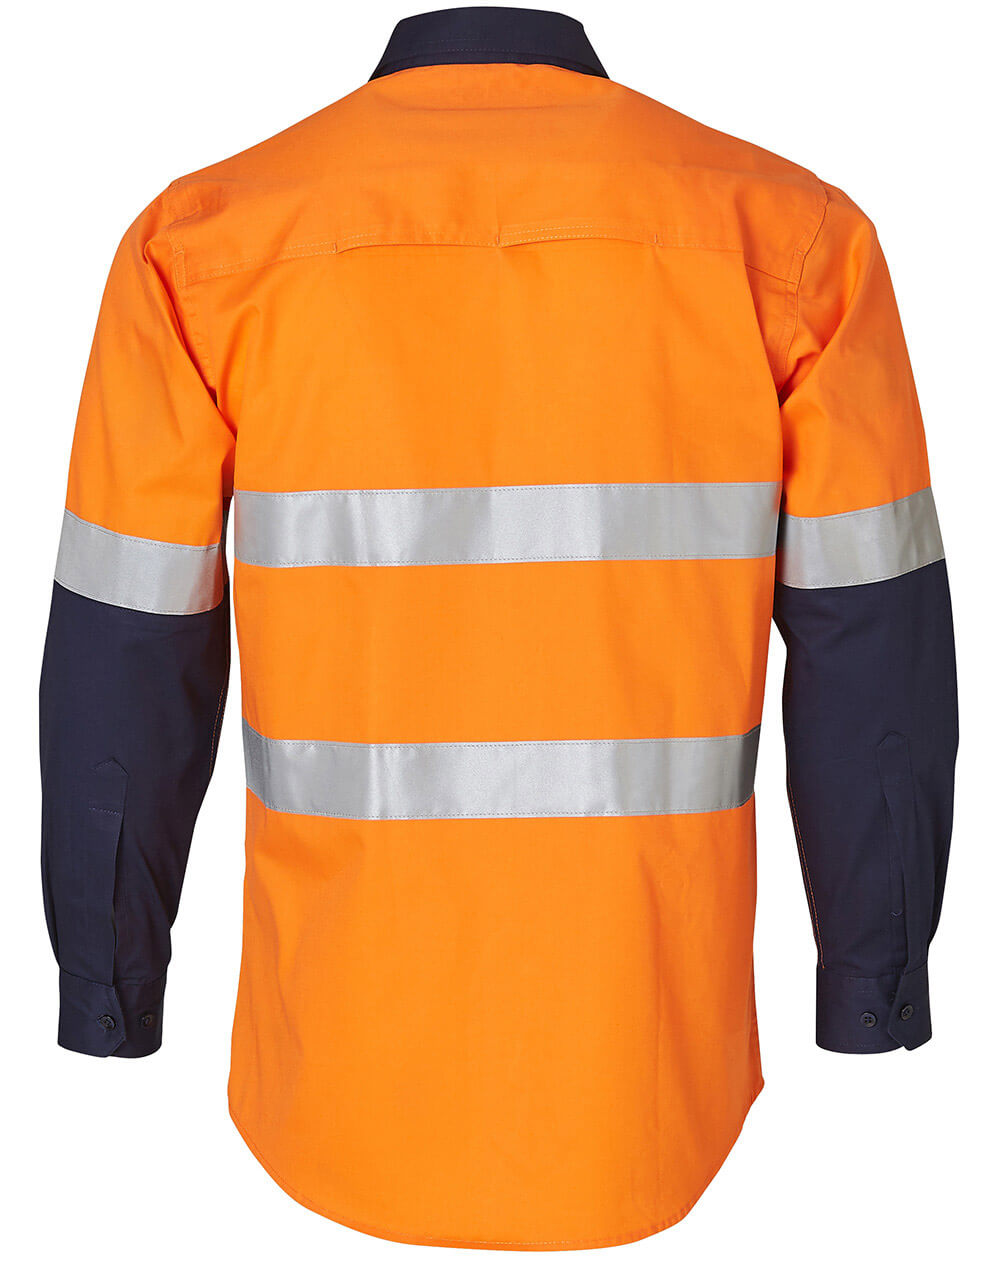 WS Mens High Vis Cool-Breeze Cotton Twill Long Sleeve Safety Shirt with Reflective 3M Tapes SW60